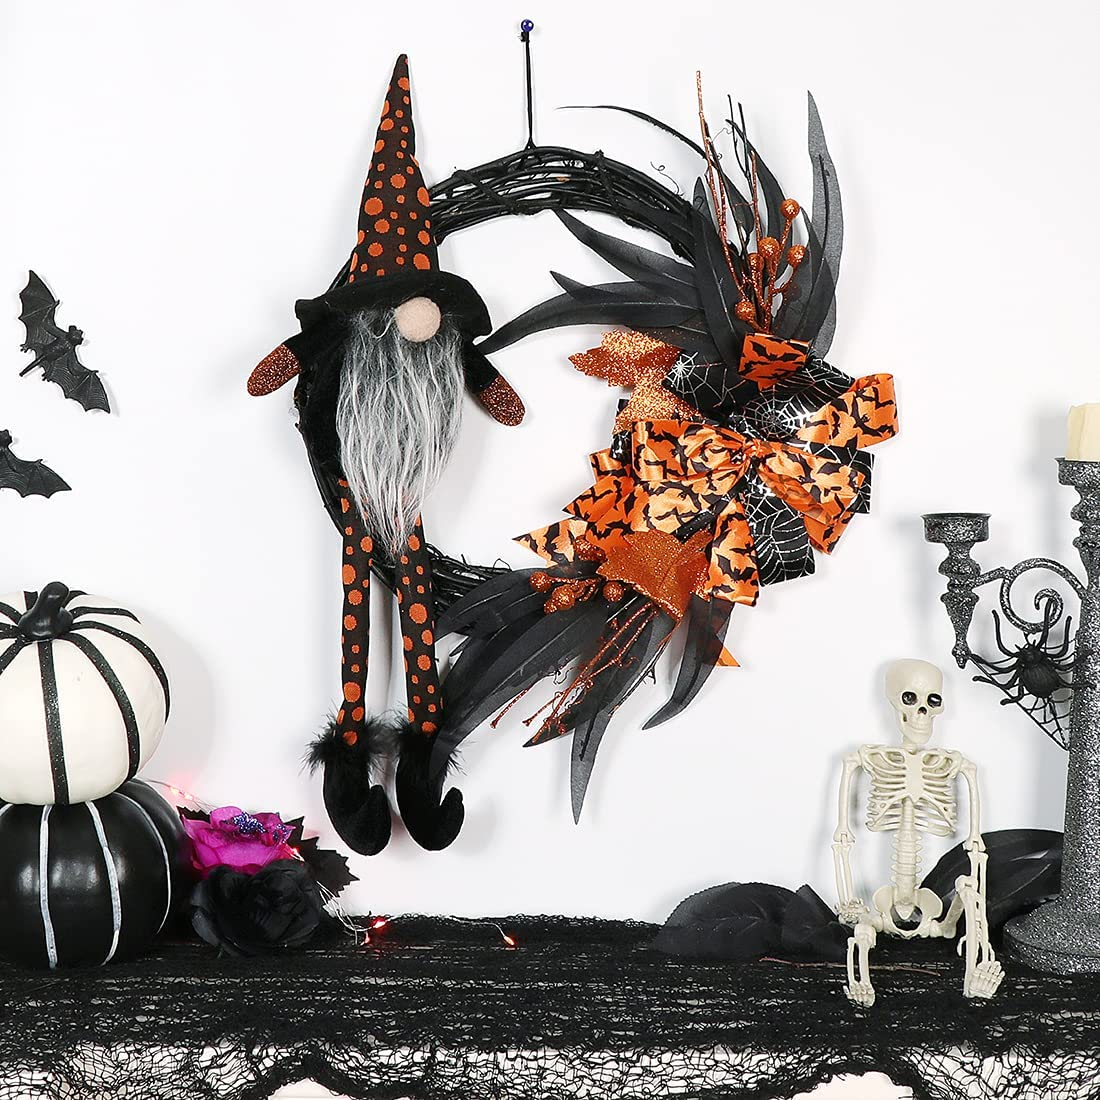 GMOEGEFT Halloween Wreath 14 Inches Wreath Witch Gnome with Ribbon Artificial Autumn Fall Decoration Front Door Wall Window Wreath Decor for Outdoor Home